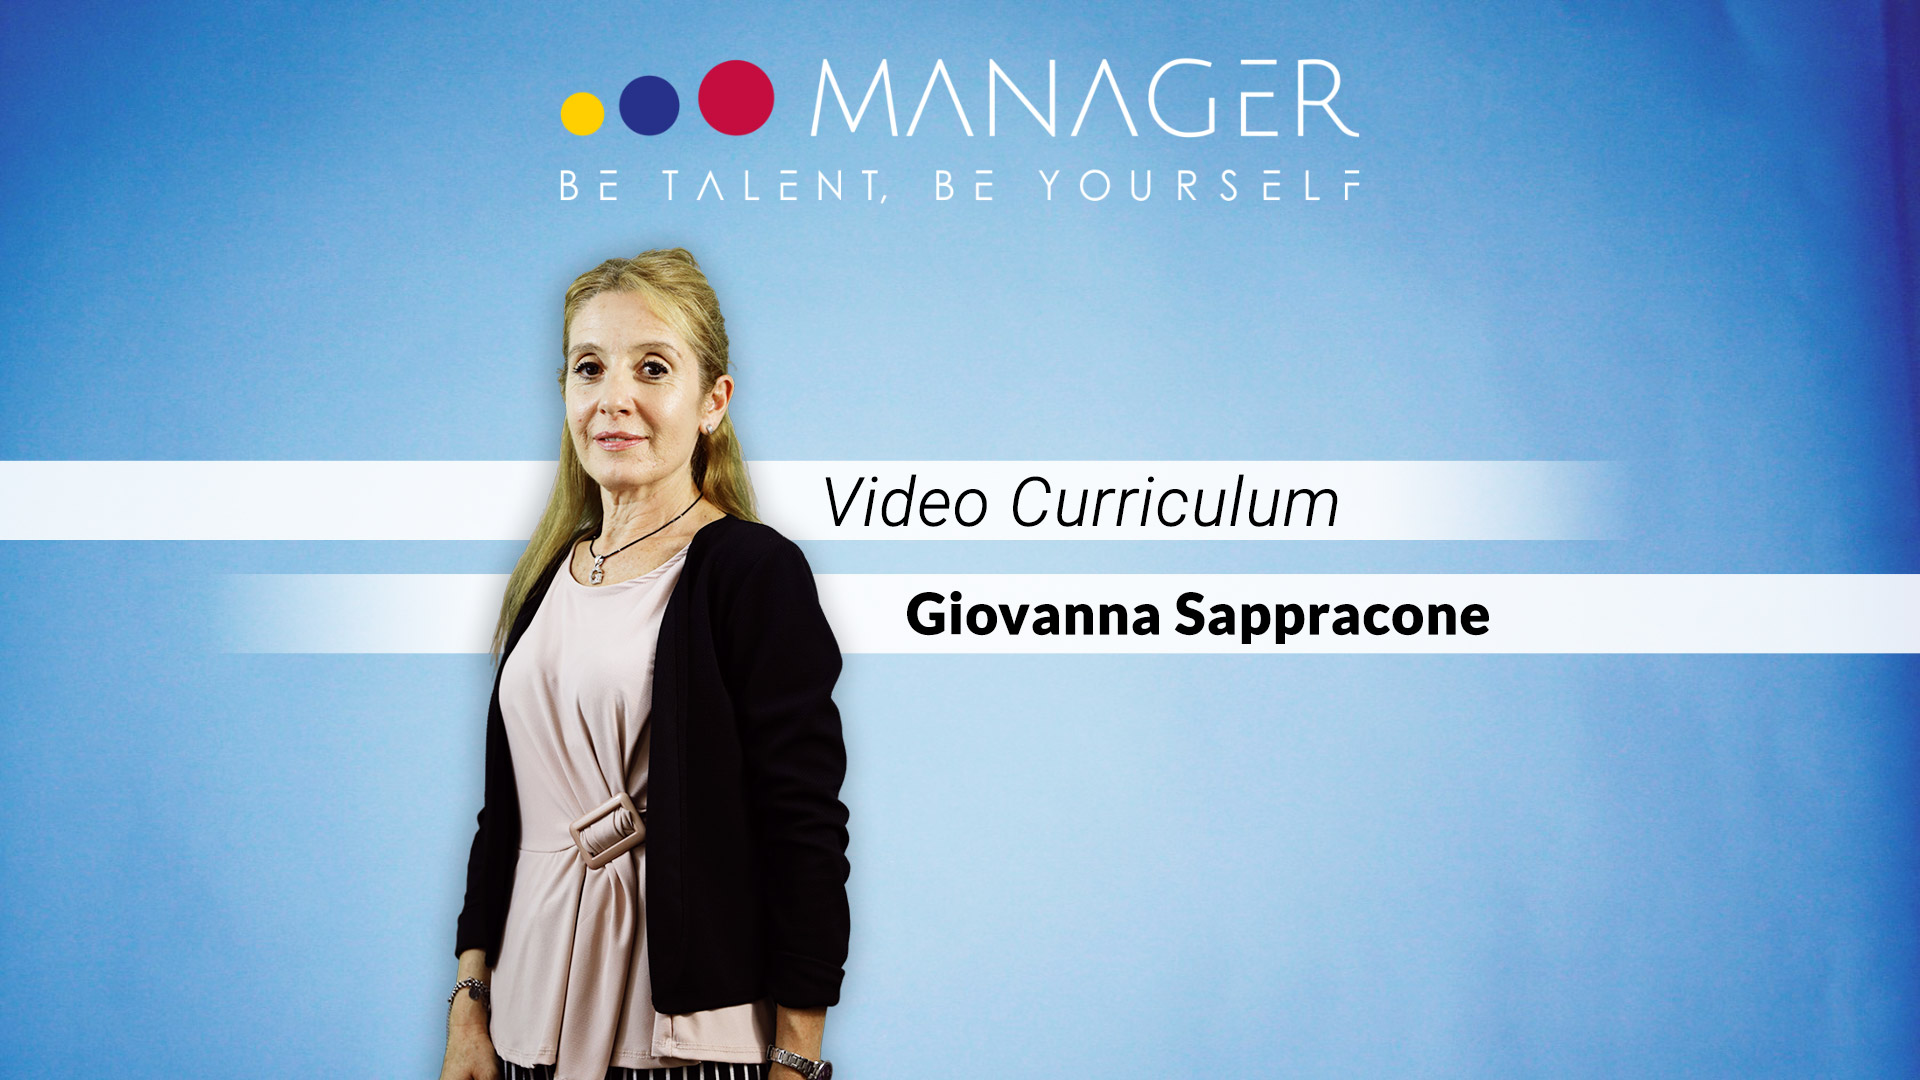 video-curriculum-giovanna-sappracone